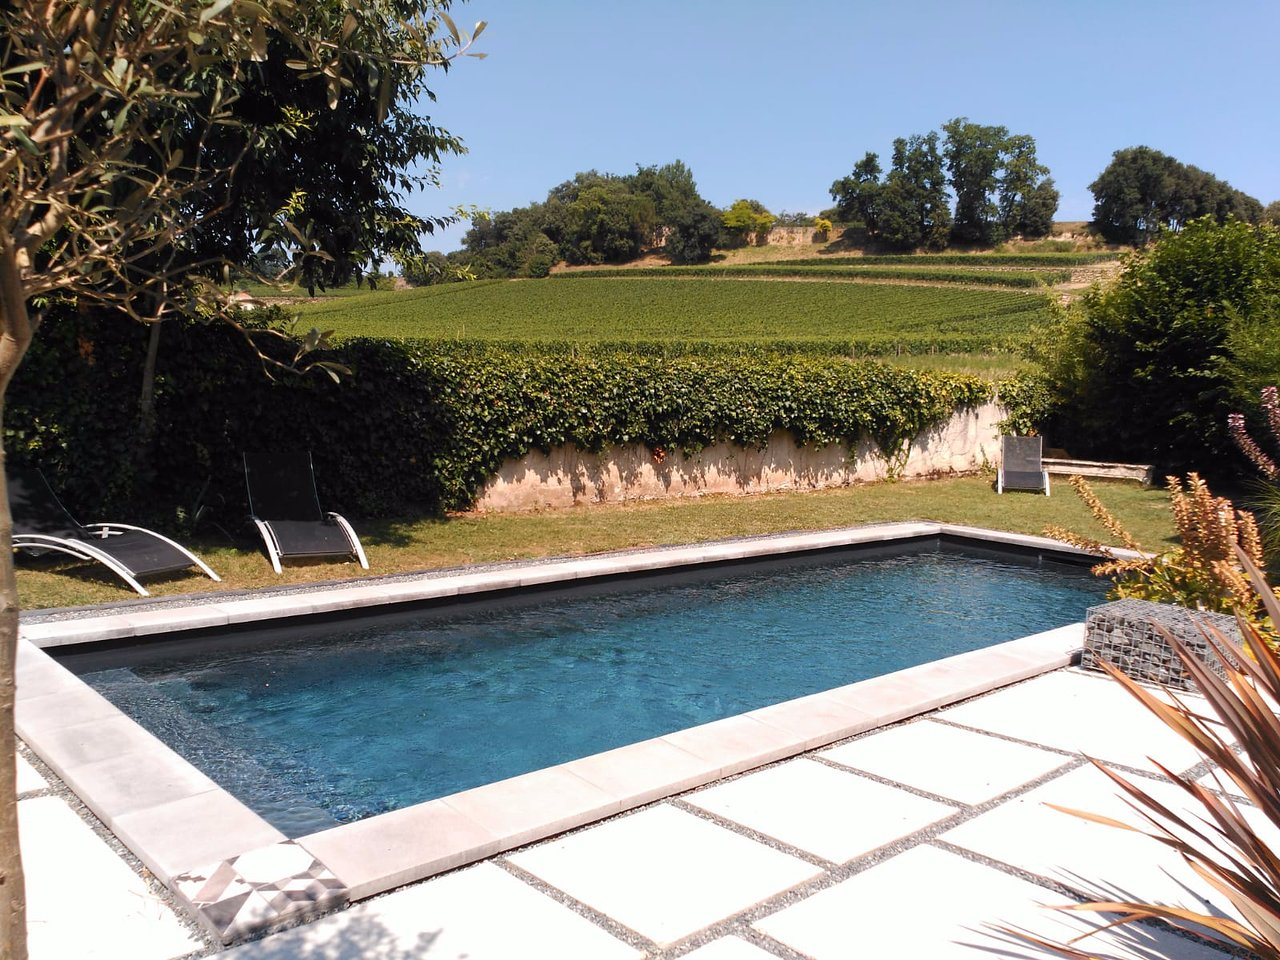 Chambre Hote Saint Emilion Clos 1906 137 151 Updated 2019 Prices B B Reviews